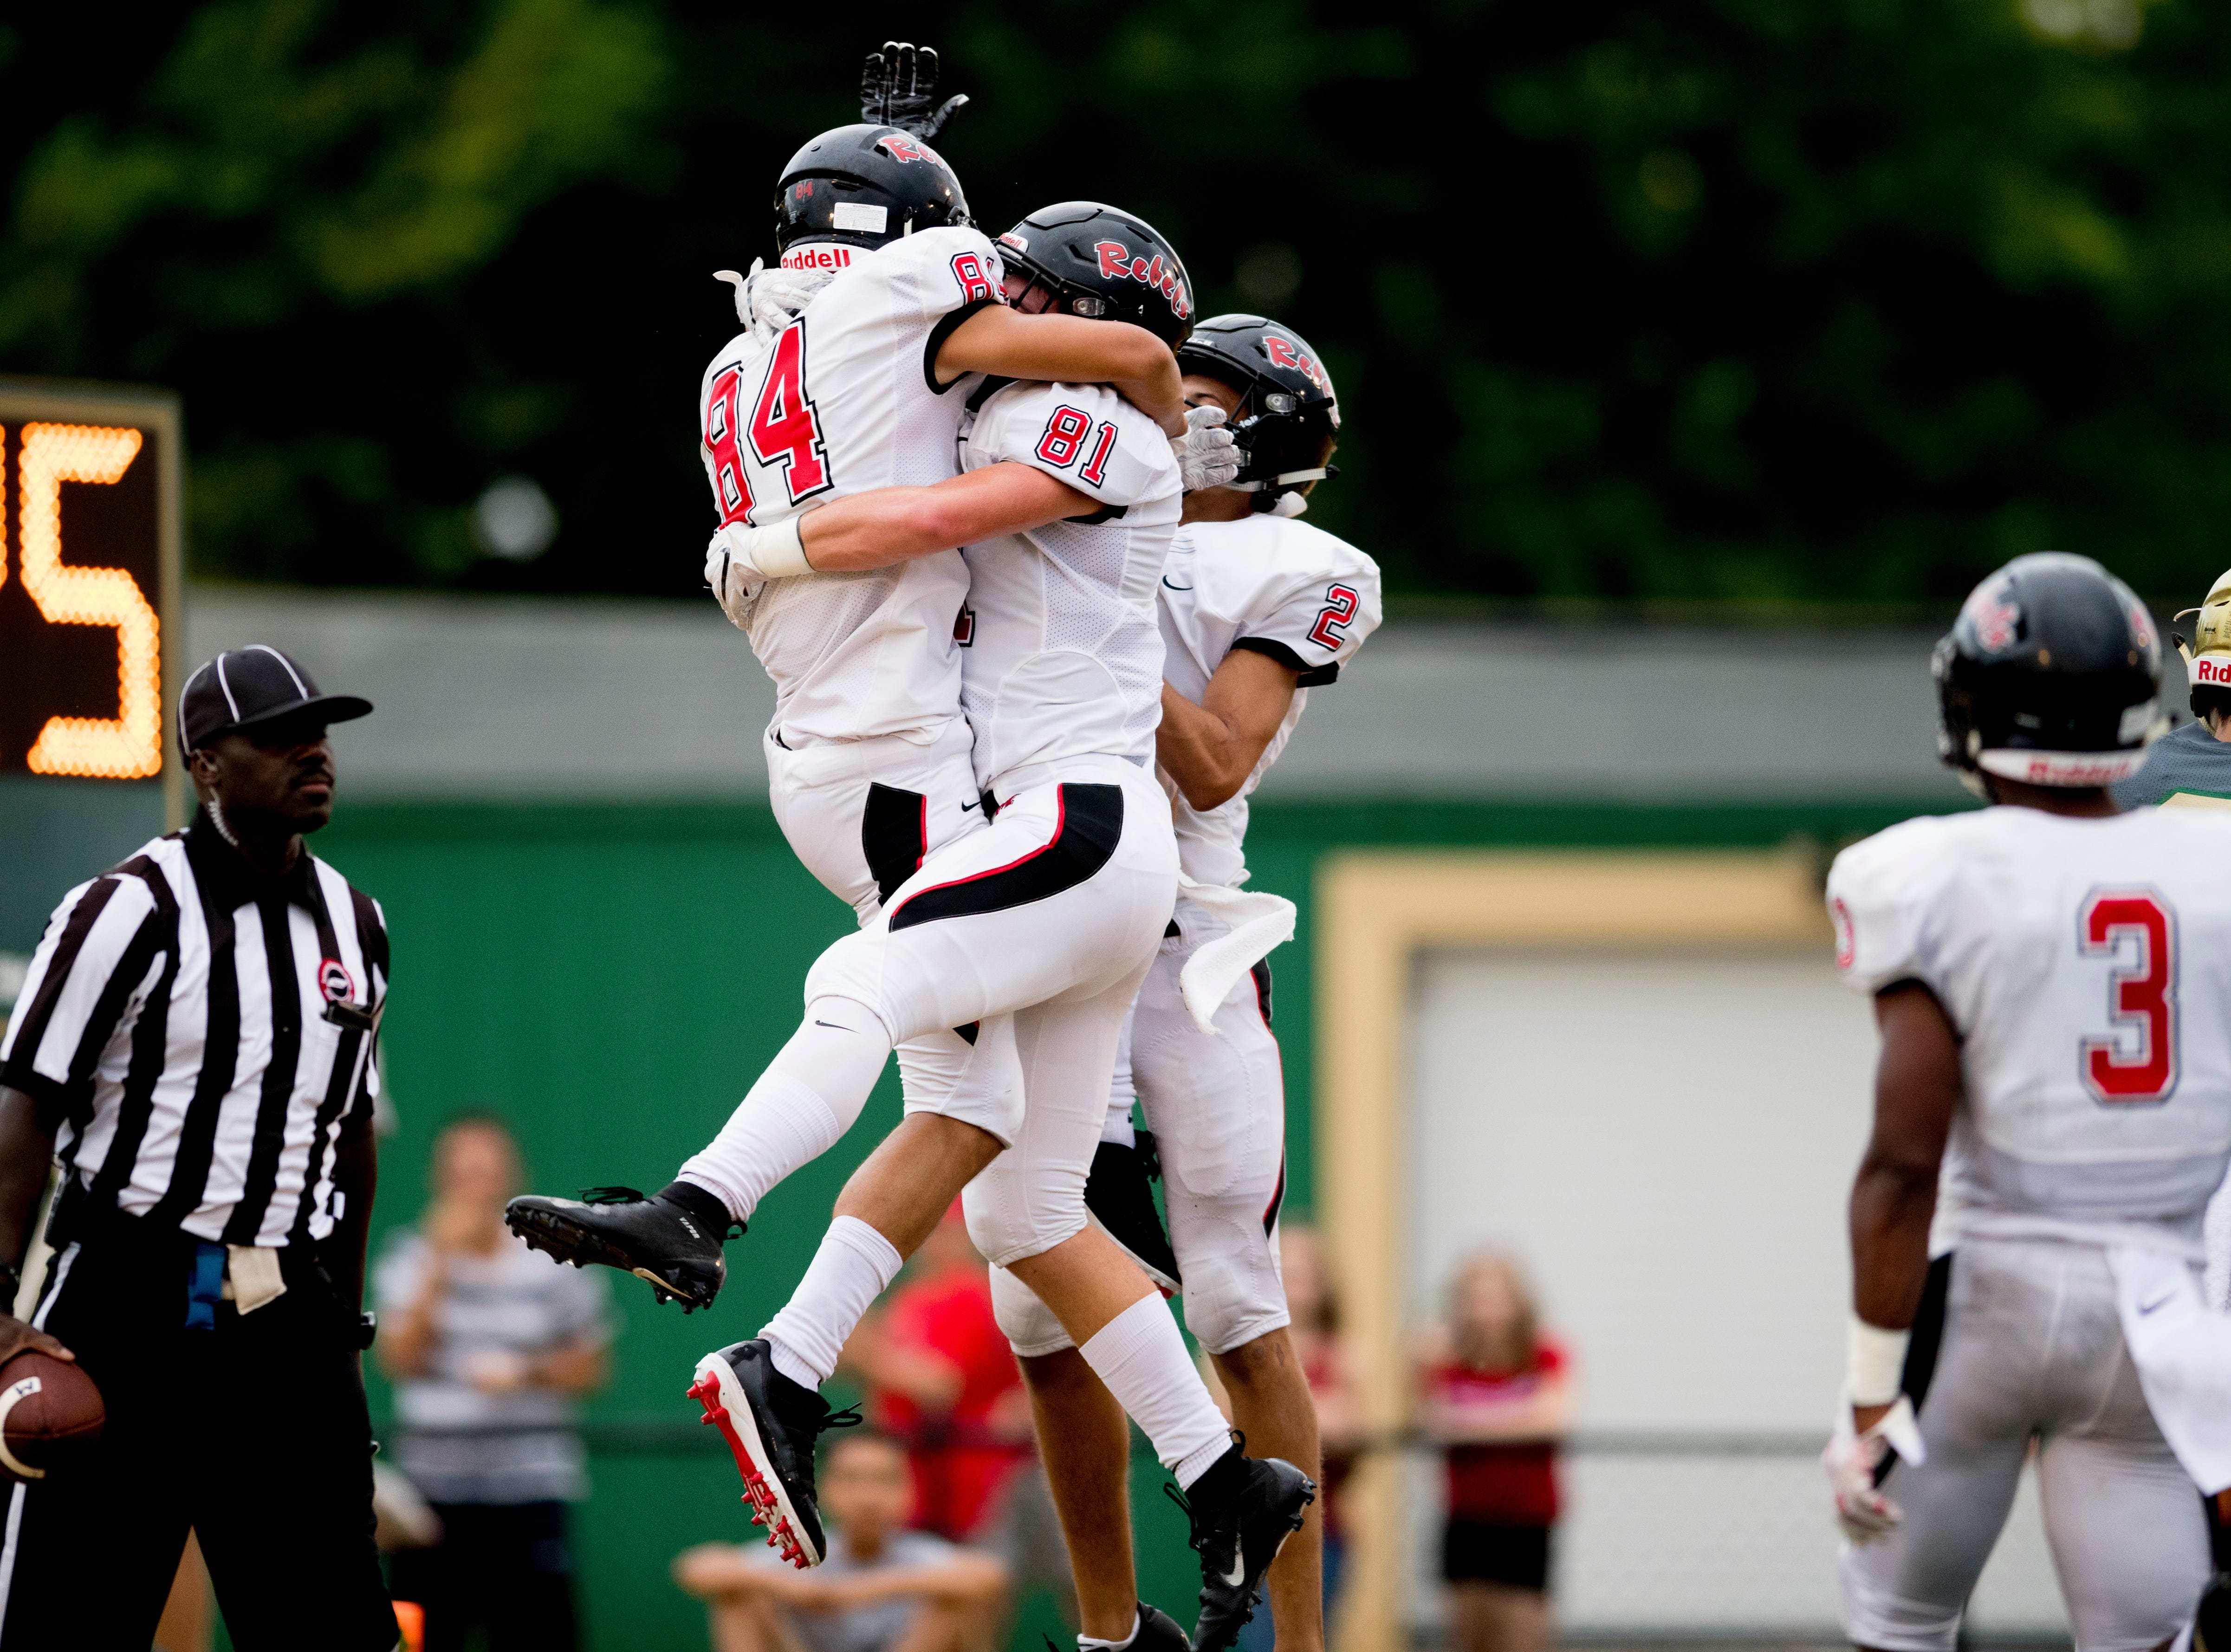 Maryville's Brayden Anderson (84) and Maryville's Brody Sloan (81) celebrate a touchdown in the end zone during a football game between Maryville and Catholic at Catholic High School in Knoxville, Tennessee on Friday, August 17, 2018.